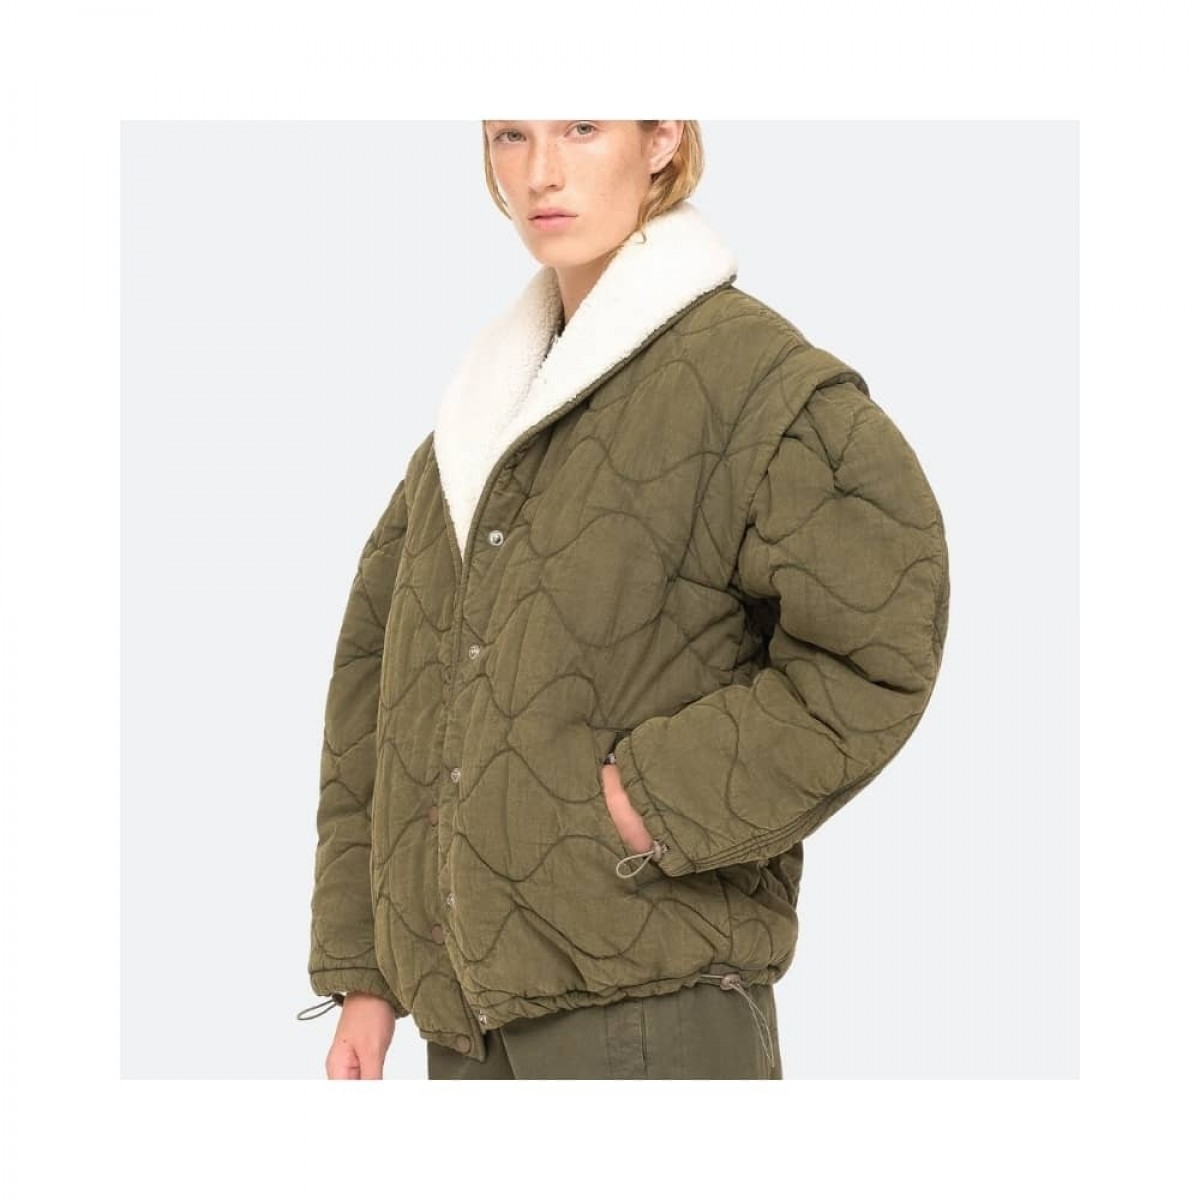 layla quilted jacket - army -model fra siden